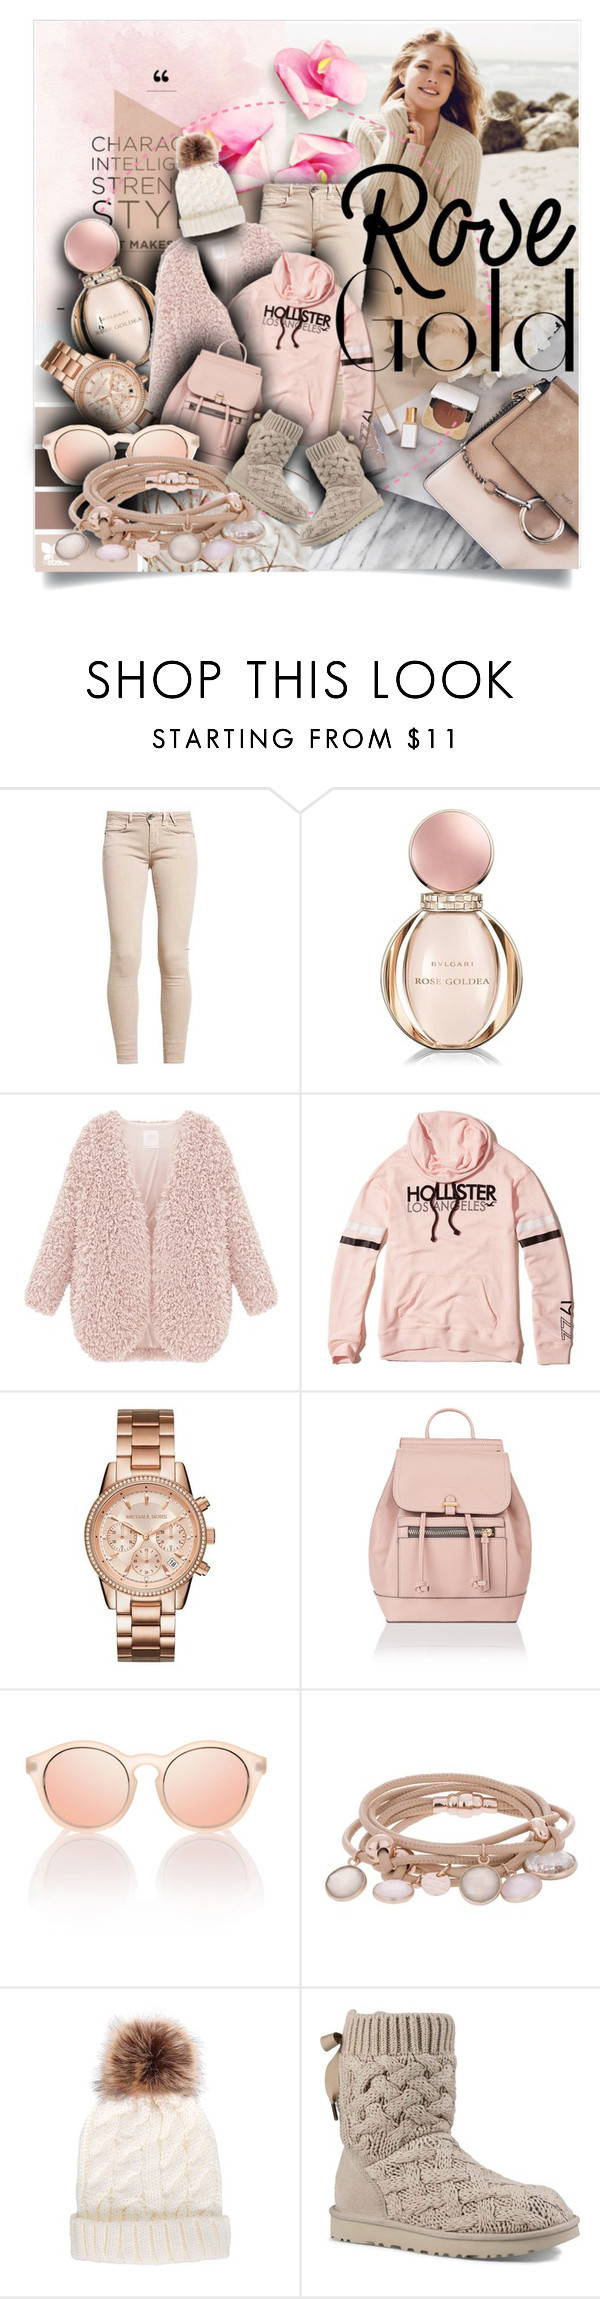 """Senza titolo #6318"" by doradabrowska ❤ liked on Polyvore featuring Repeat Cashmere, GUESS, Bulgari, Hollister Co., Accessorize, Le Specs, Marjana von Berlepsch and UGG"